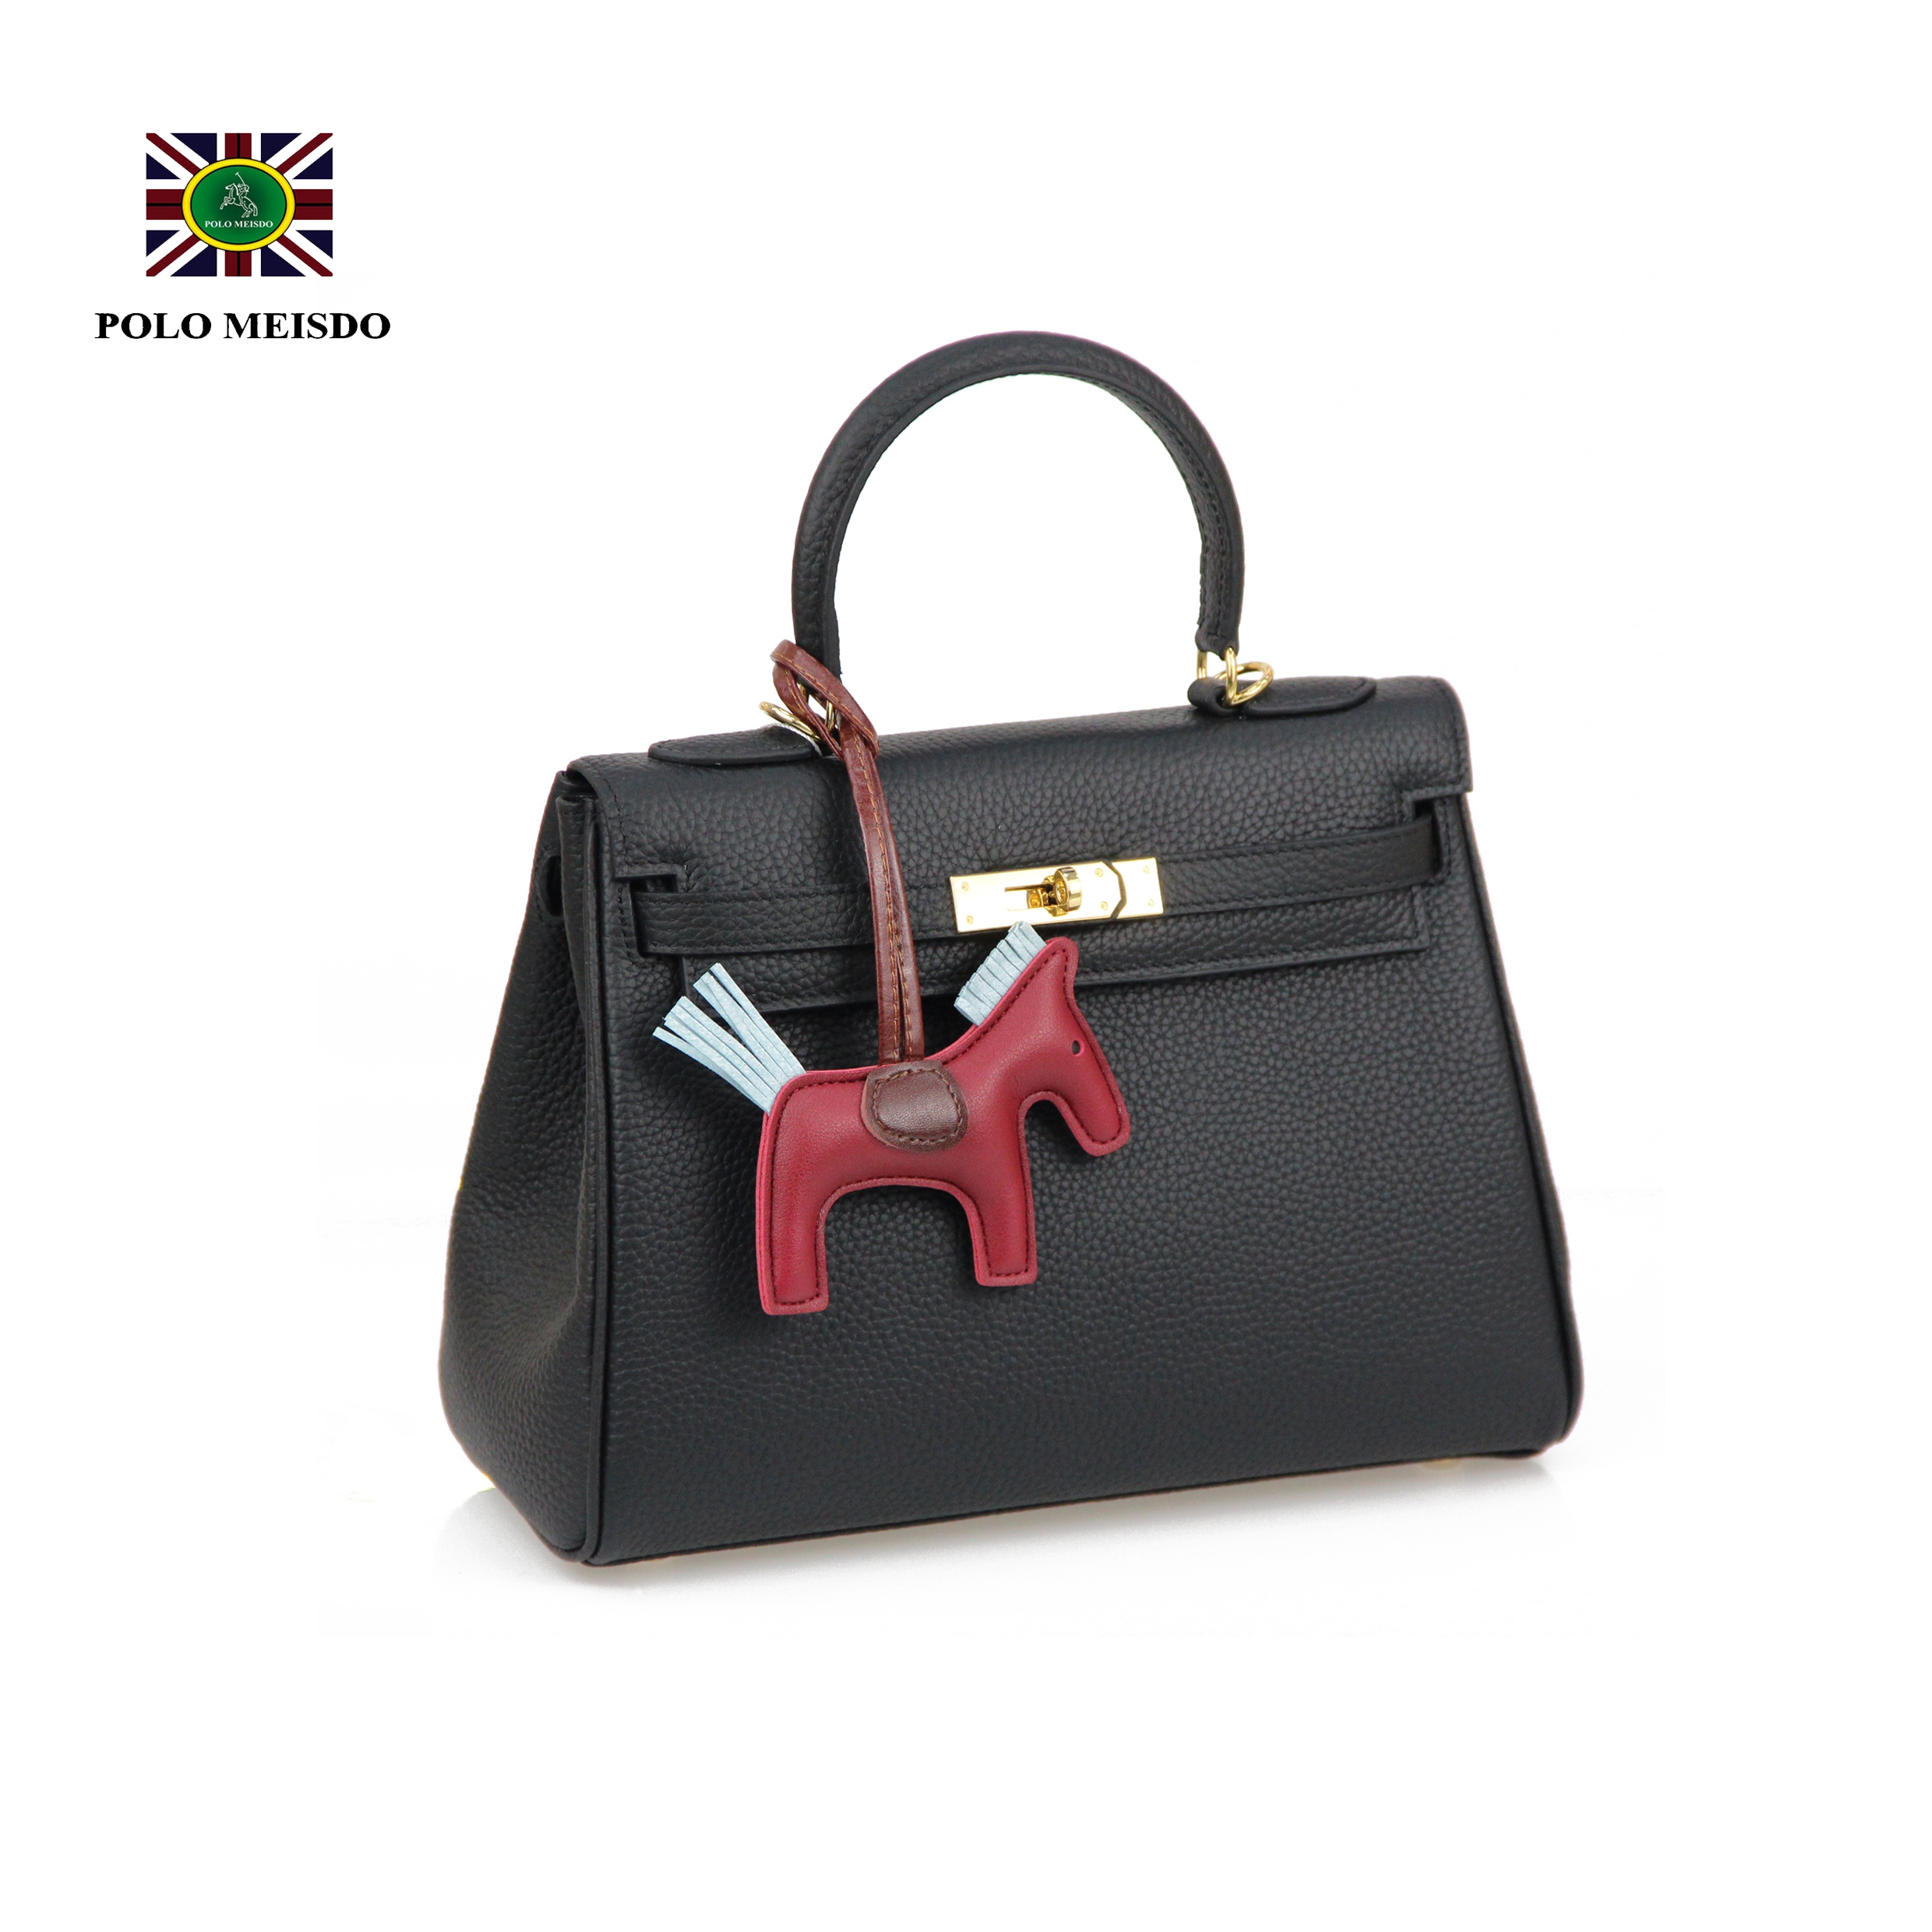 Zb88236 fashionable and simple new Kelly bag [size 280 * 120 * 210mm]